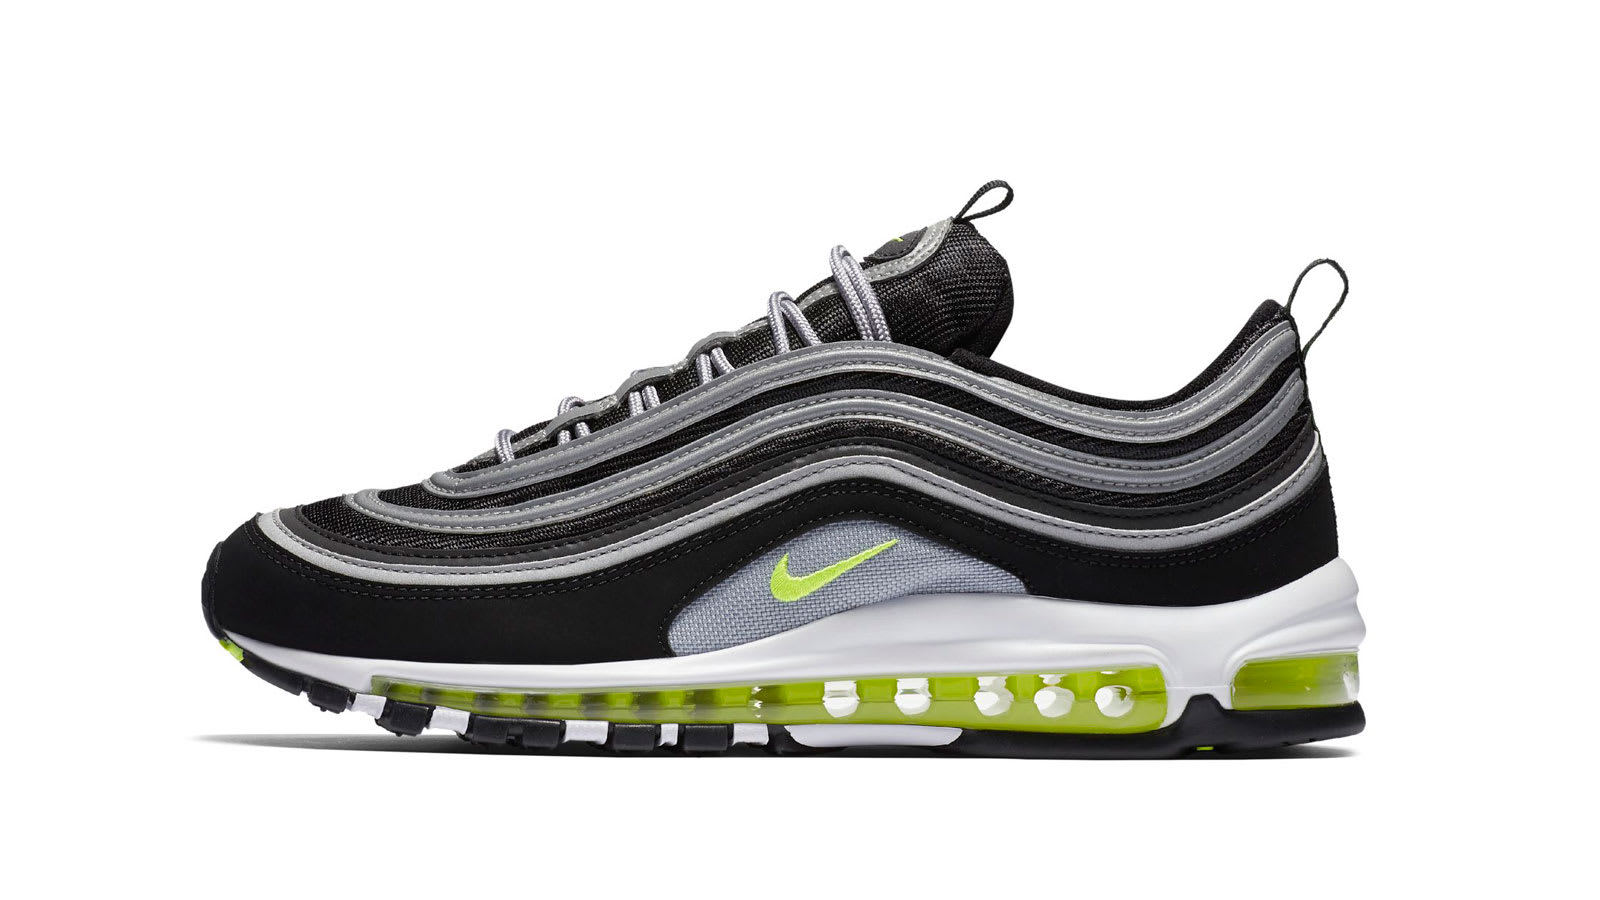 Nike-Air-Max-97-Japan-OG-Black-Volt-Hero